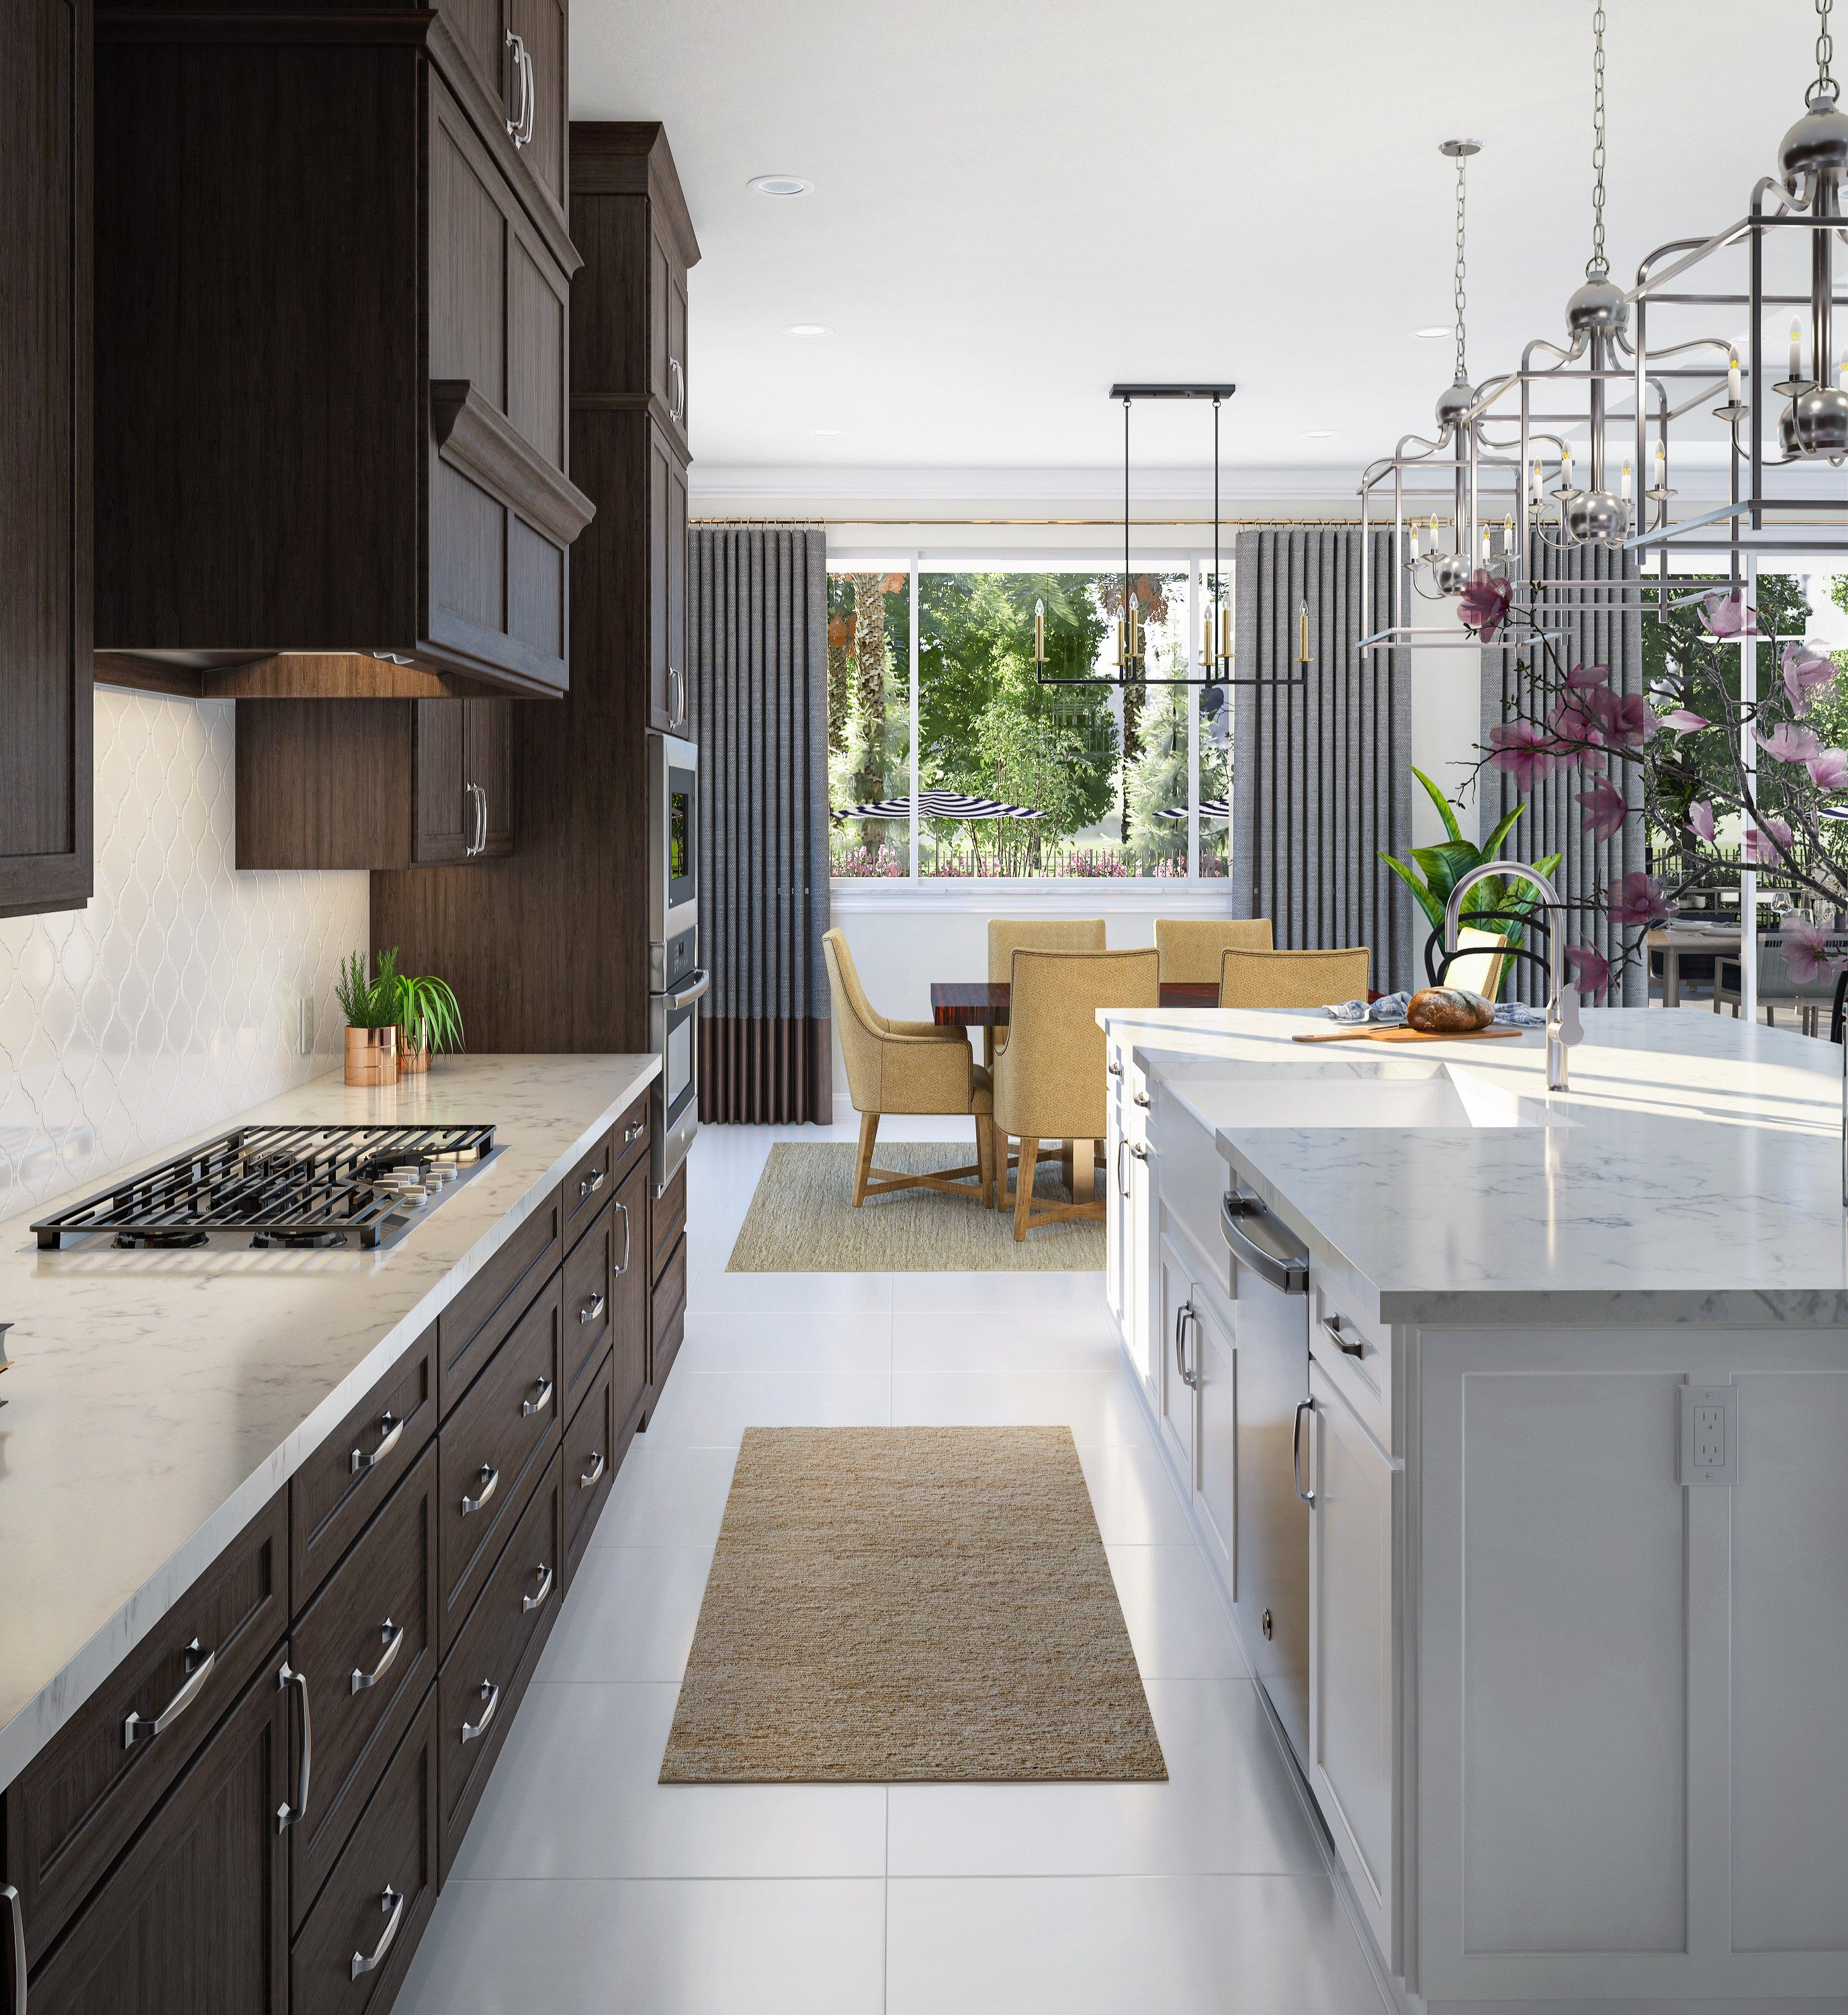 Kitchen featured in the Elsinore By K. Hovnanian® Homes in Palm Beach County, FL